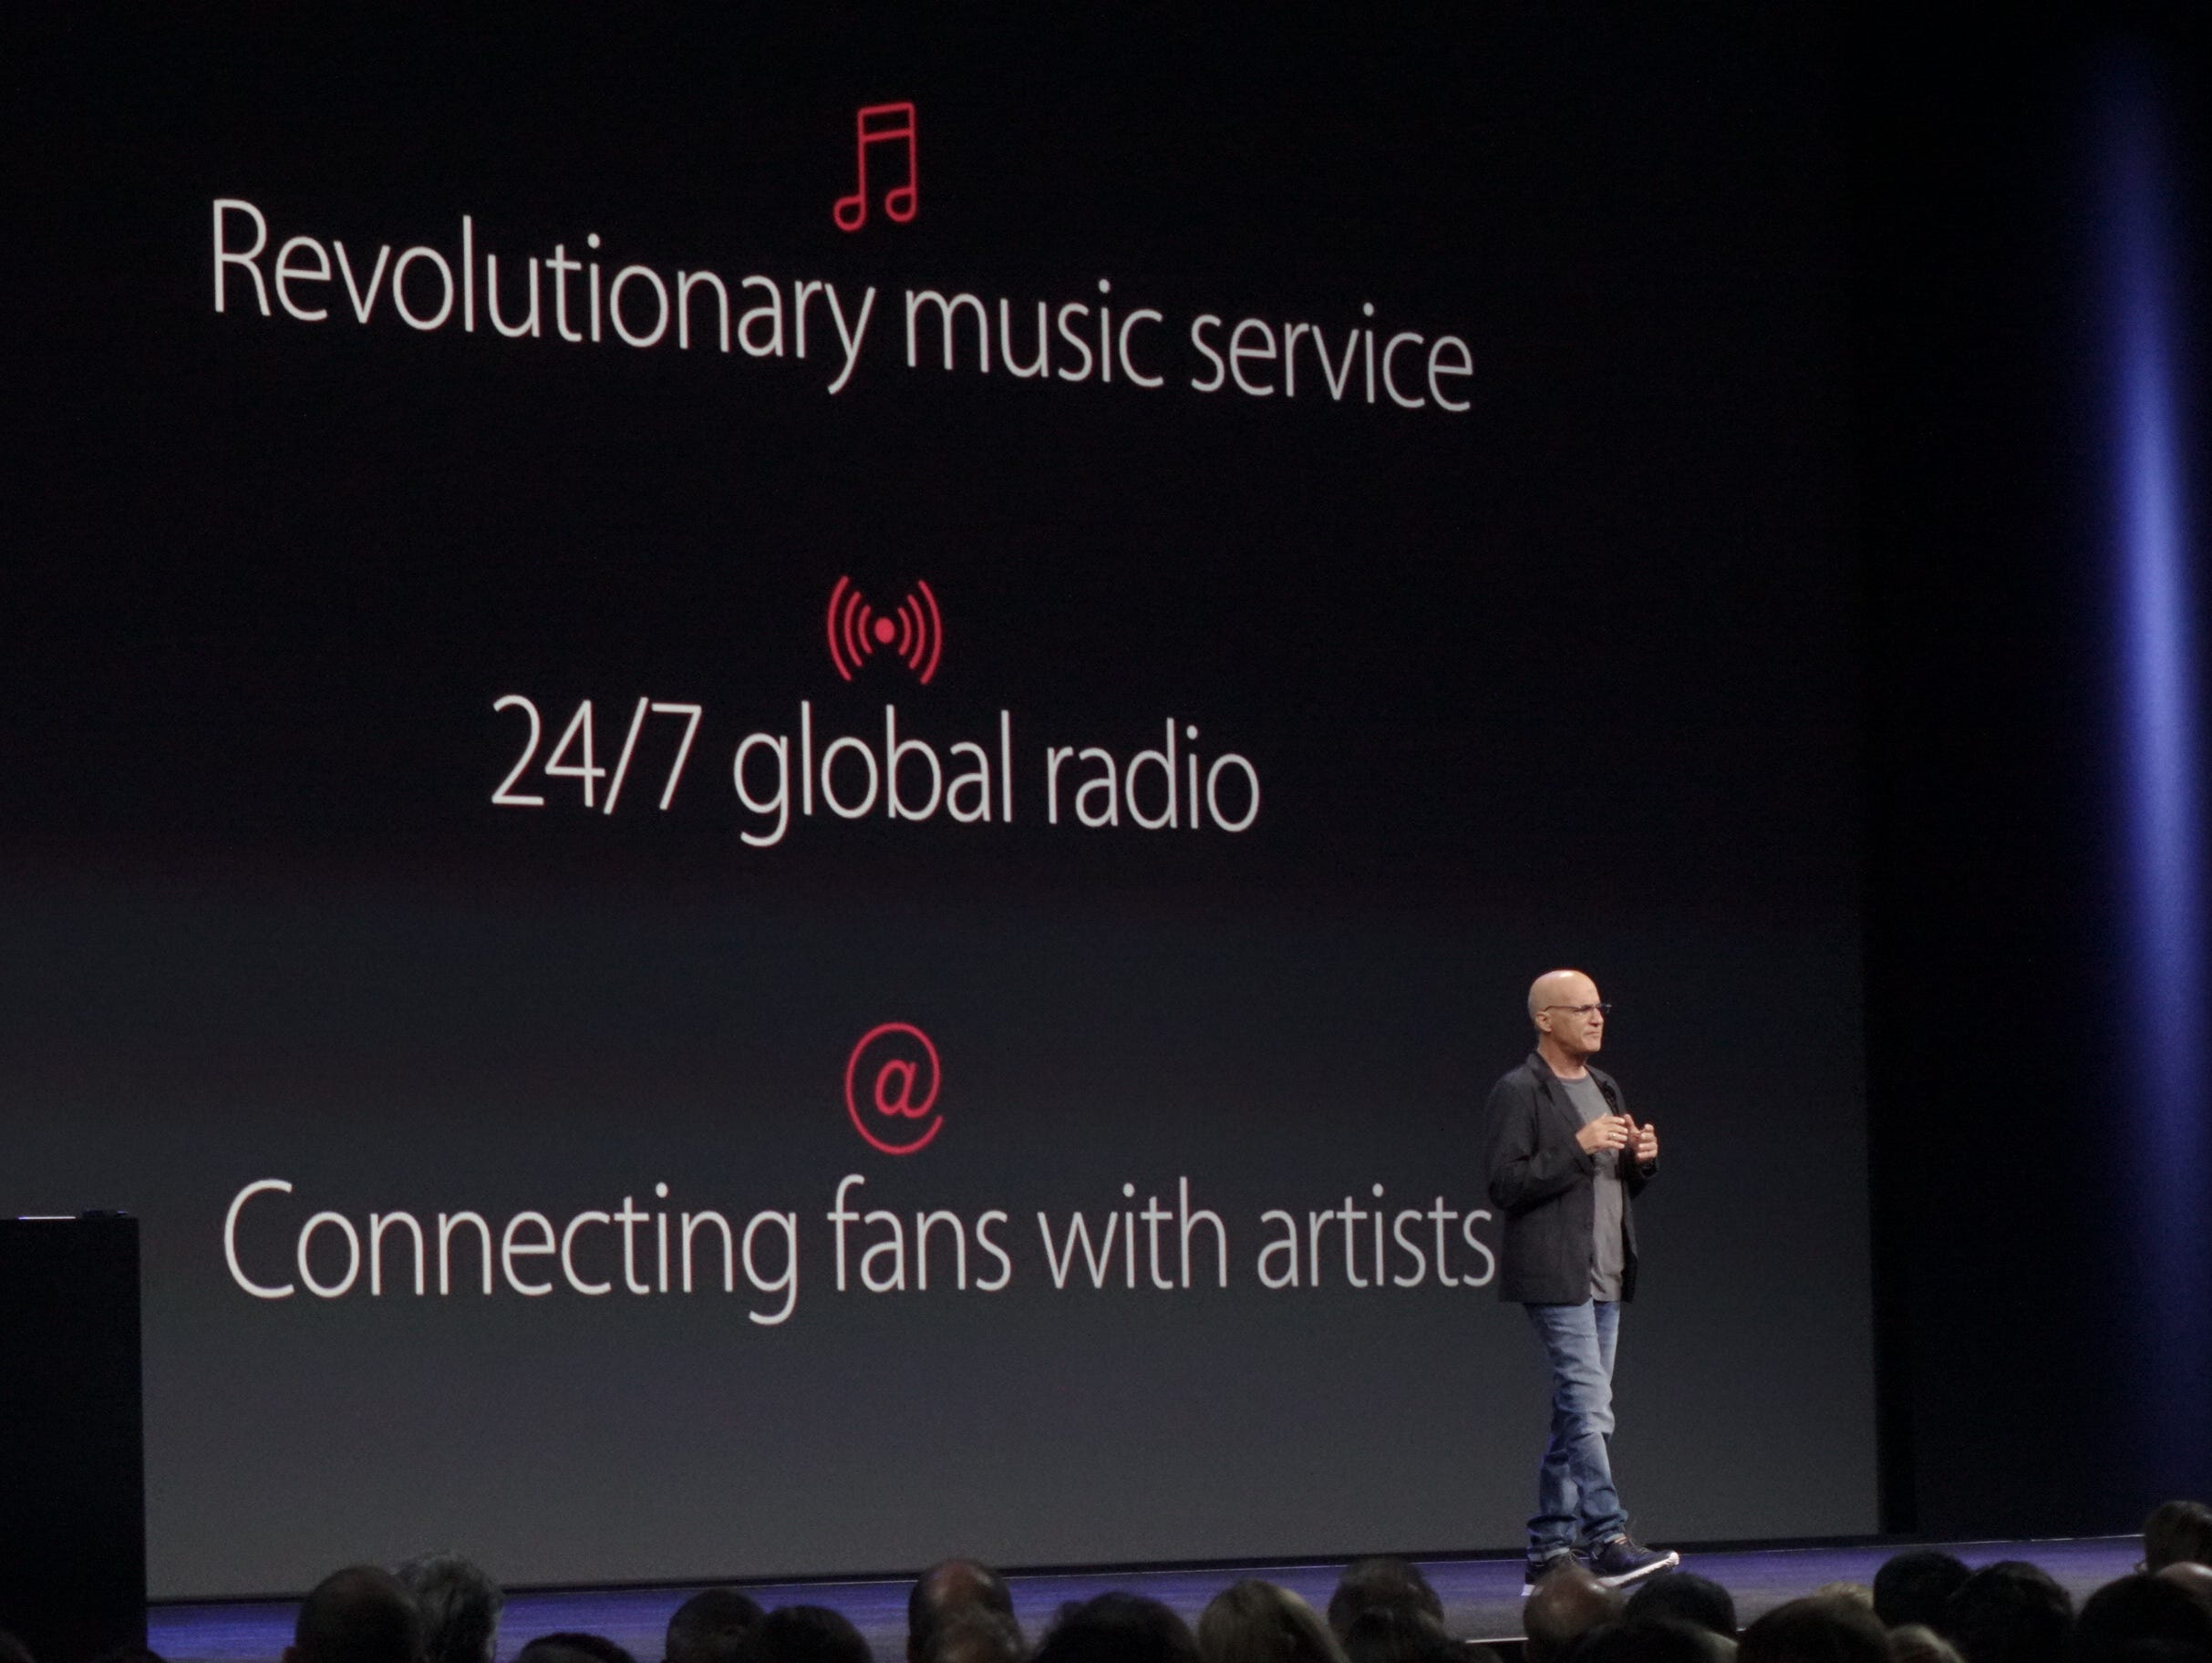 Jimmy Iovine at WWDC Apple conference